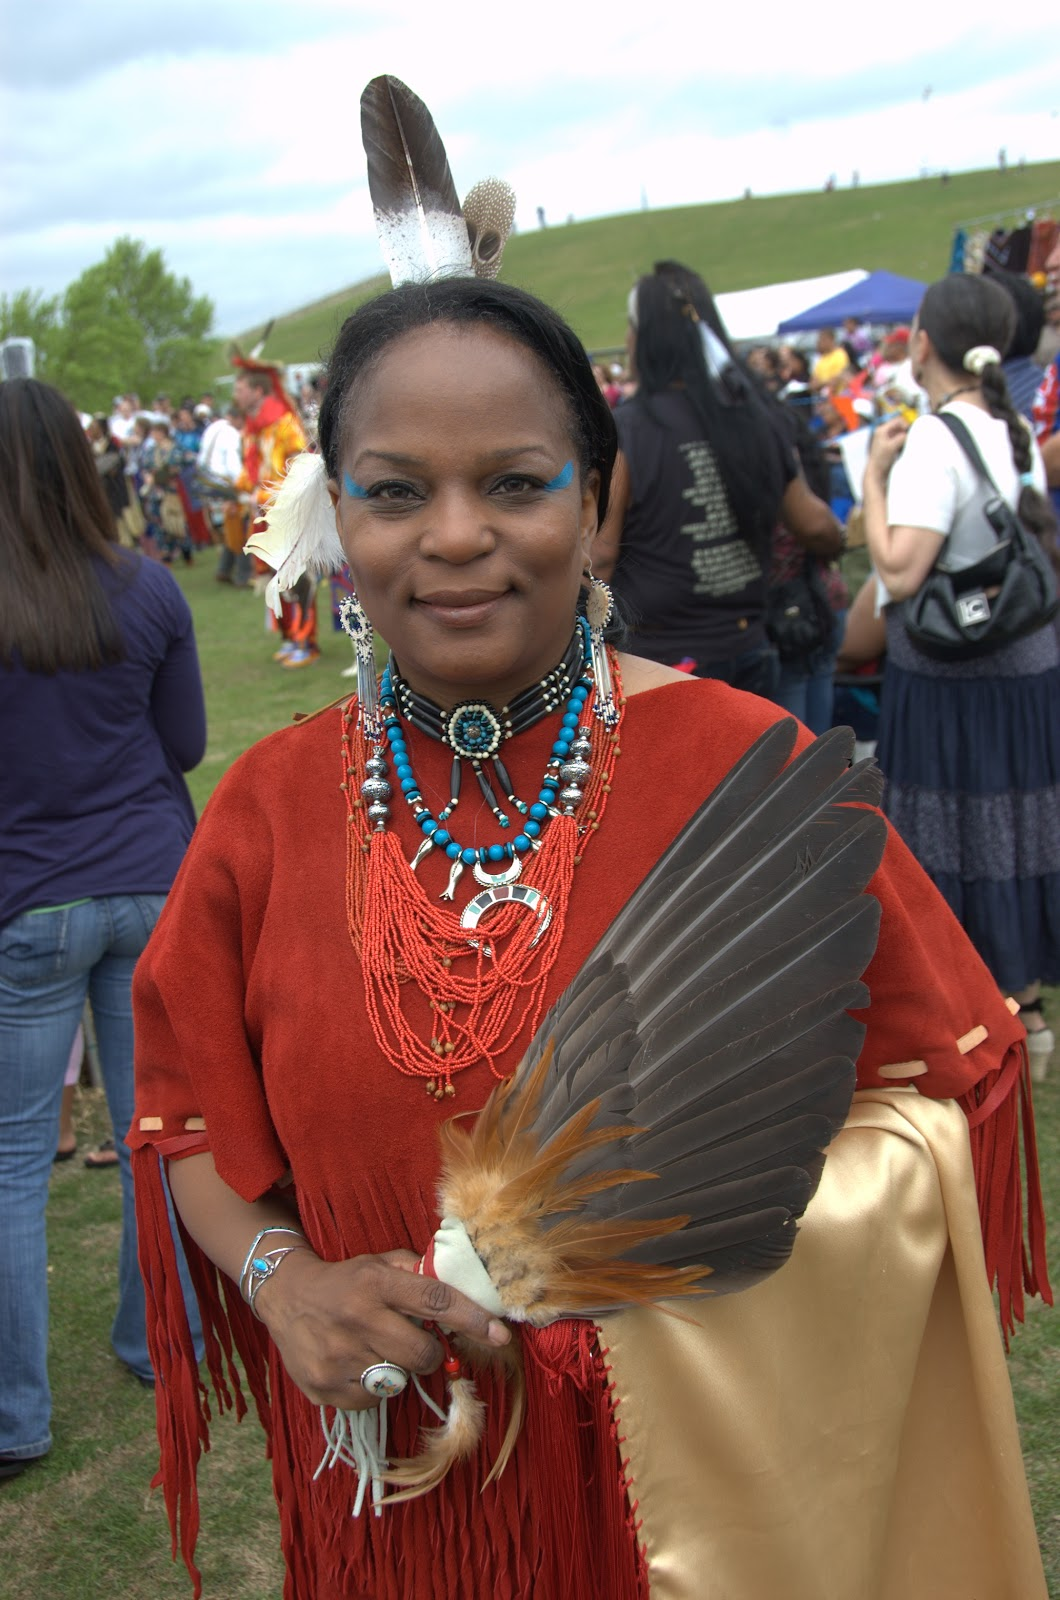 Virginia Beach pow wow - a proud Native woman Veteran - Photo: Vincent Schilling